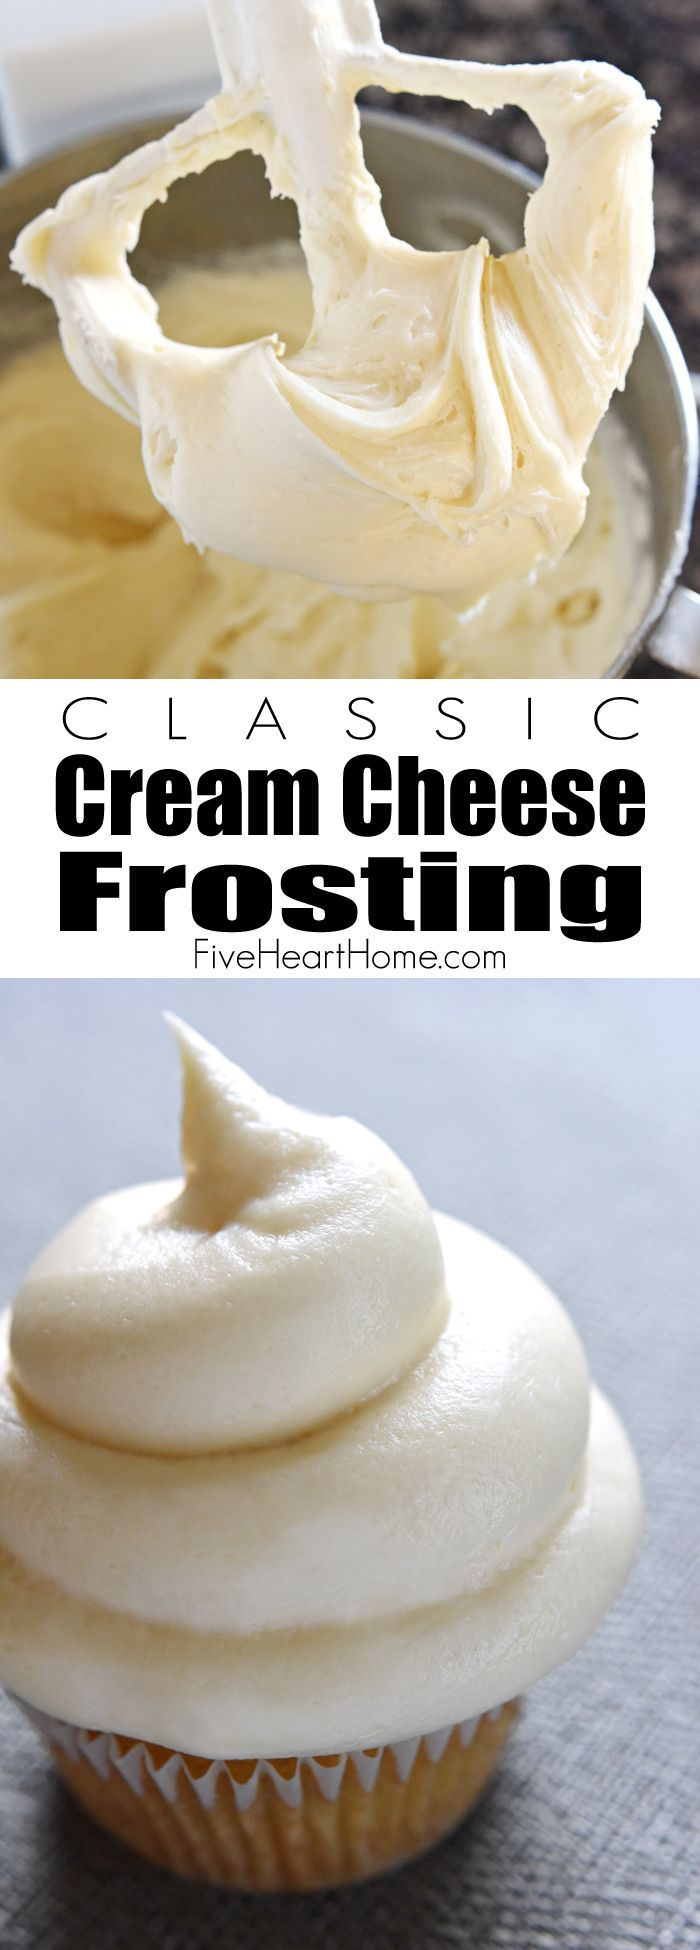 ladies parka coat Classic Cream Cheese Frosting   silky and sweet with a slight tang from the cream cheese  this effortless frosting comes together with just four ingredients and complements a variety of cakes and cupcakes   FiveHeartHome com